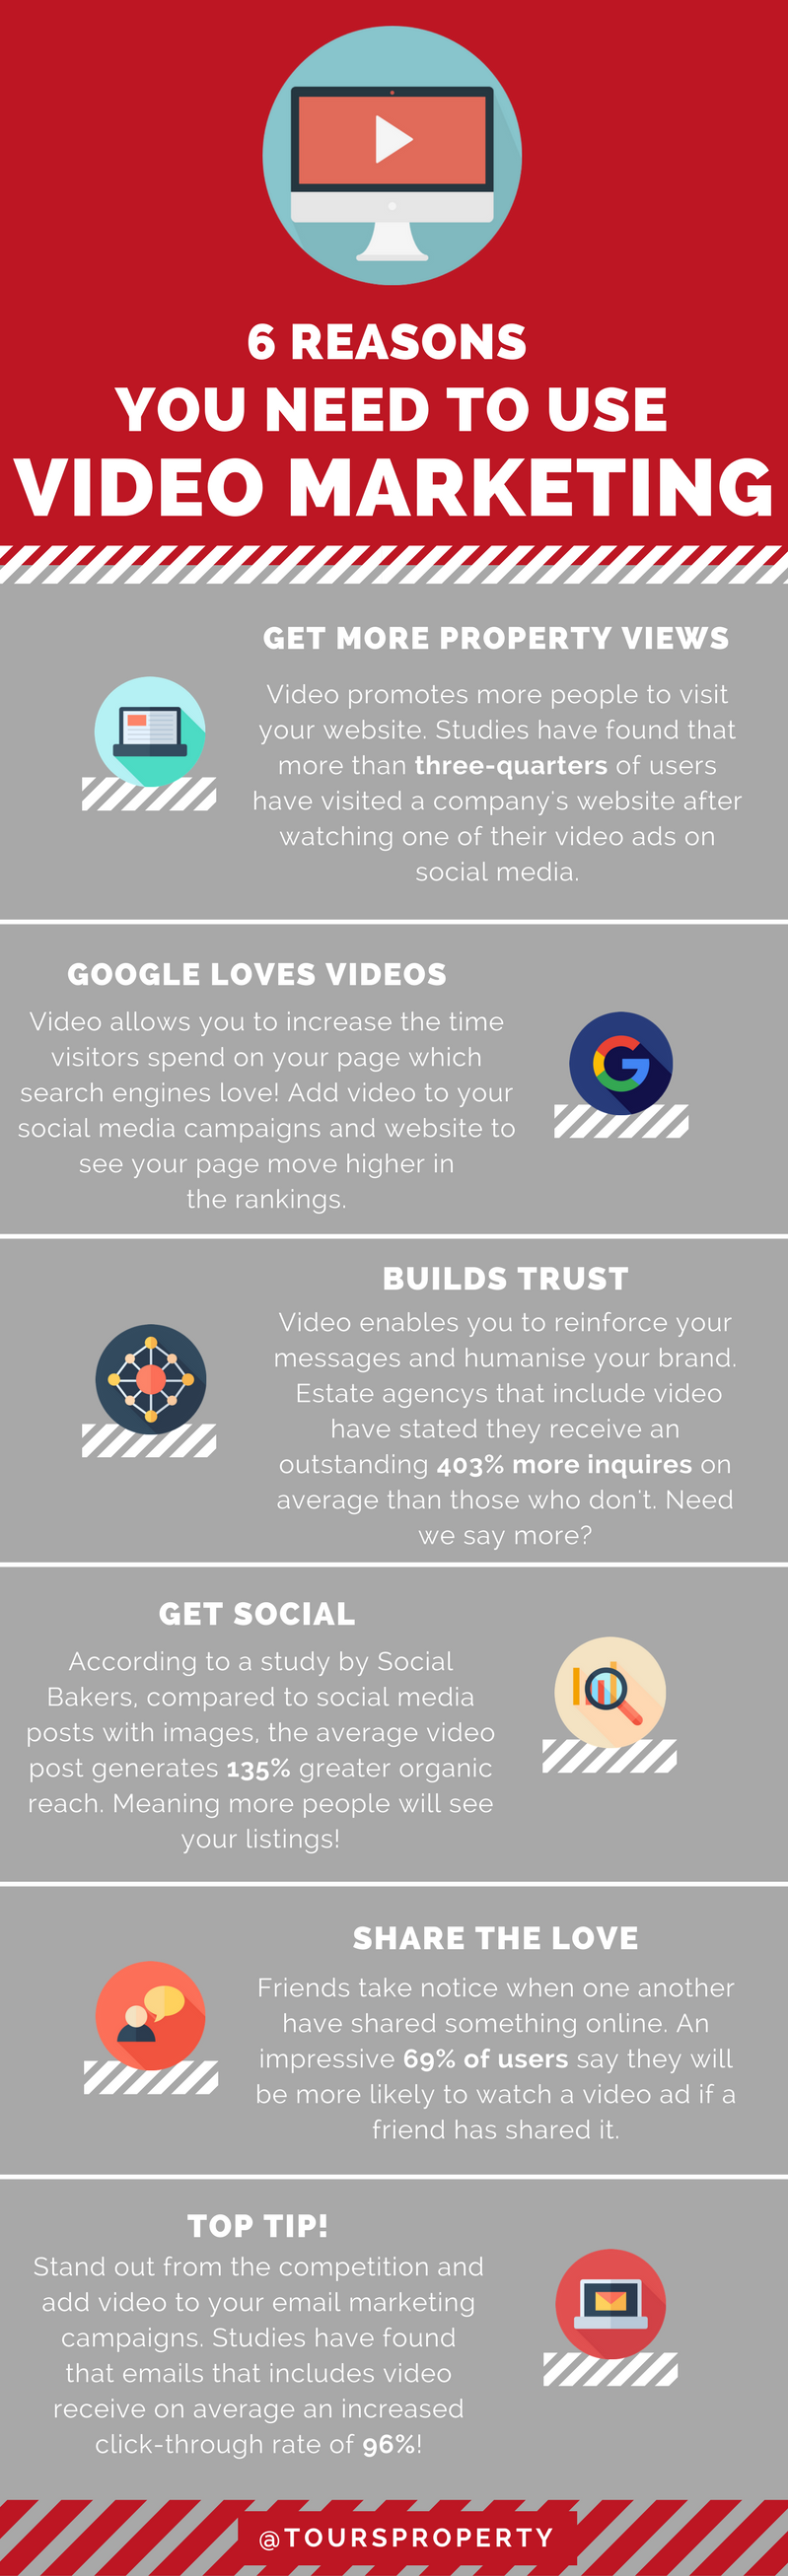 reason you need to use video marketing in smart property discover the 6 key reasons you should be using video marketing in your website and social media strategy and uncover the opportunity to reach and